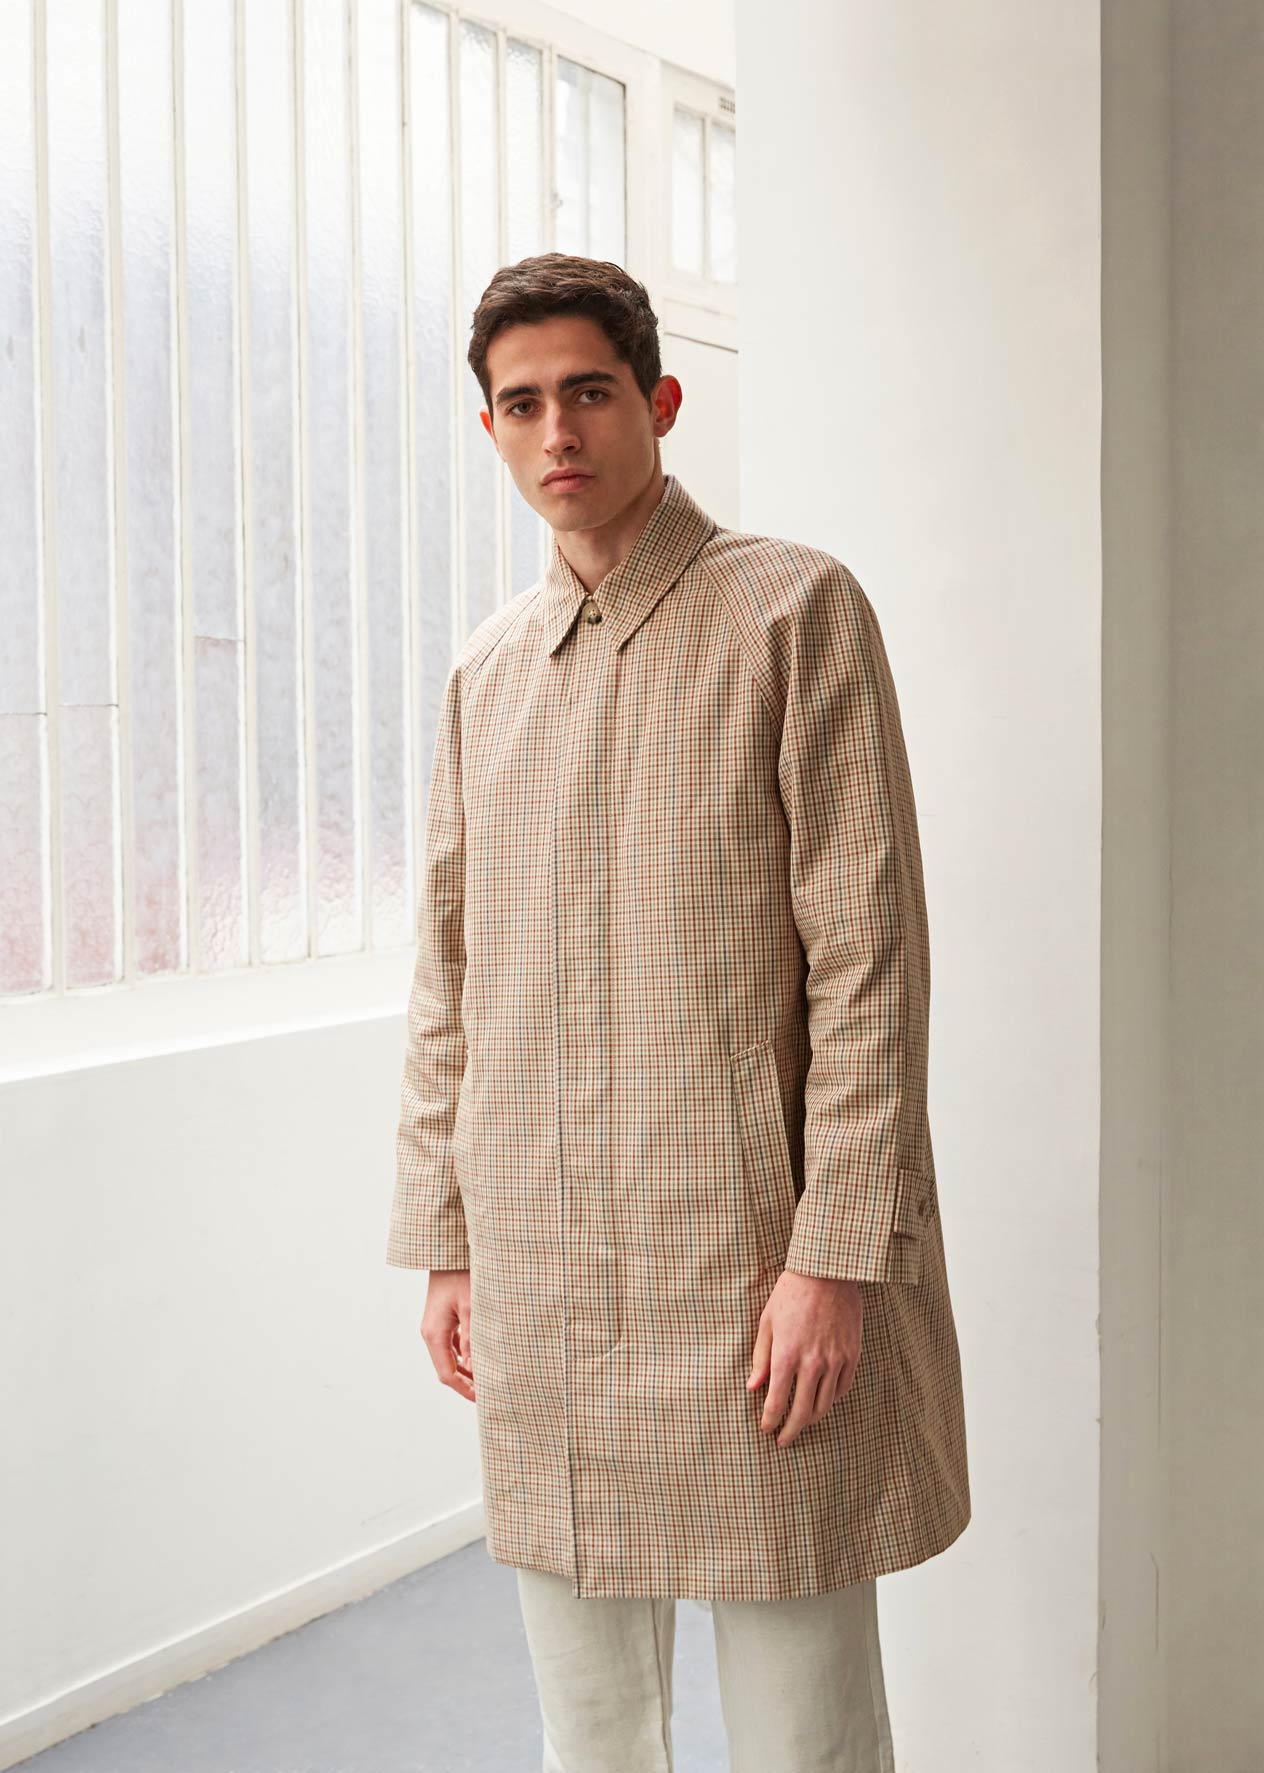 Parisian raincoat - Italian cloth - Scottish check - De Bonne Facture